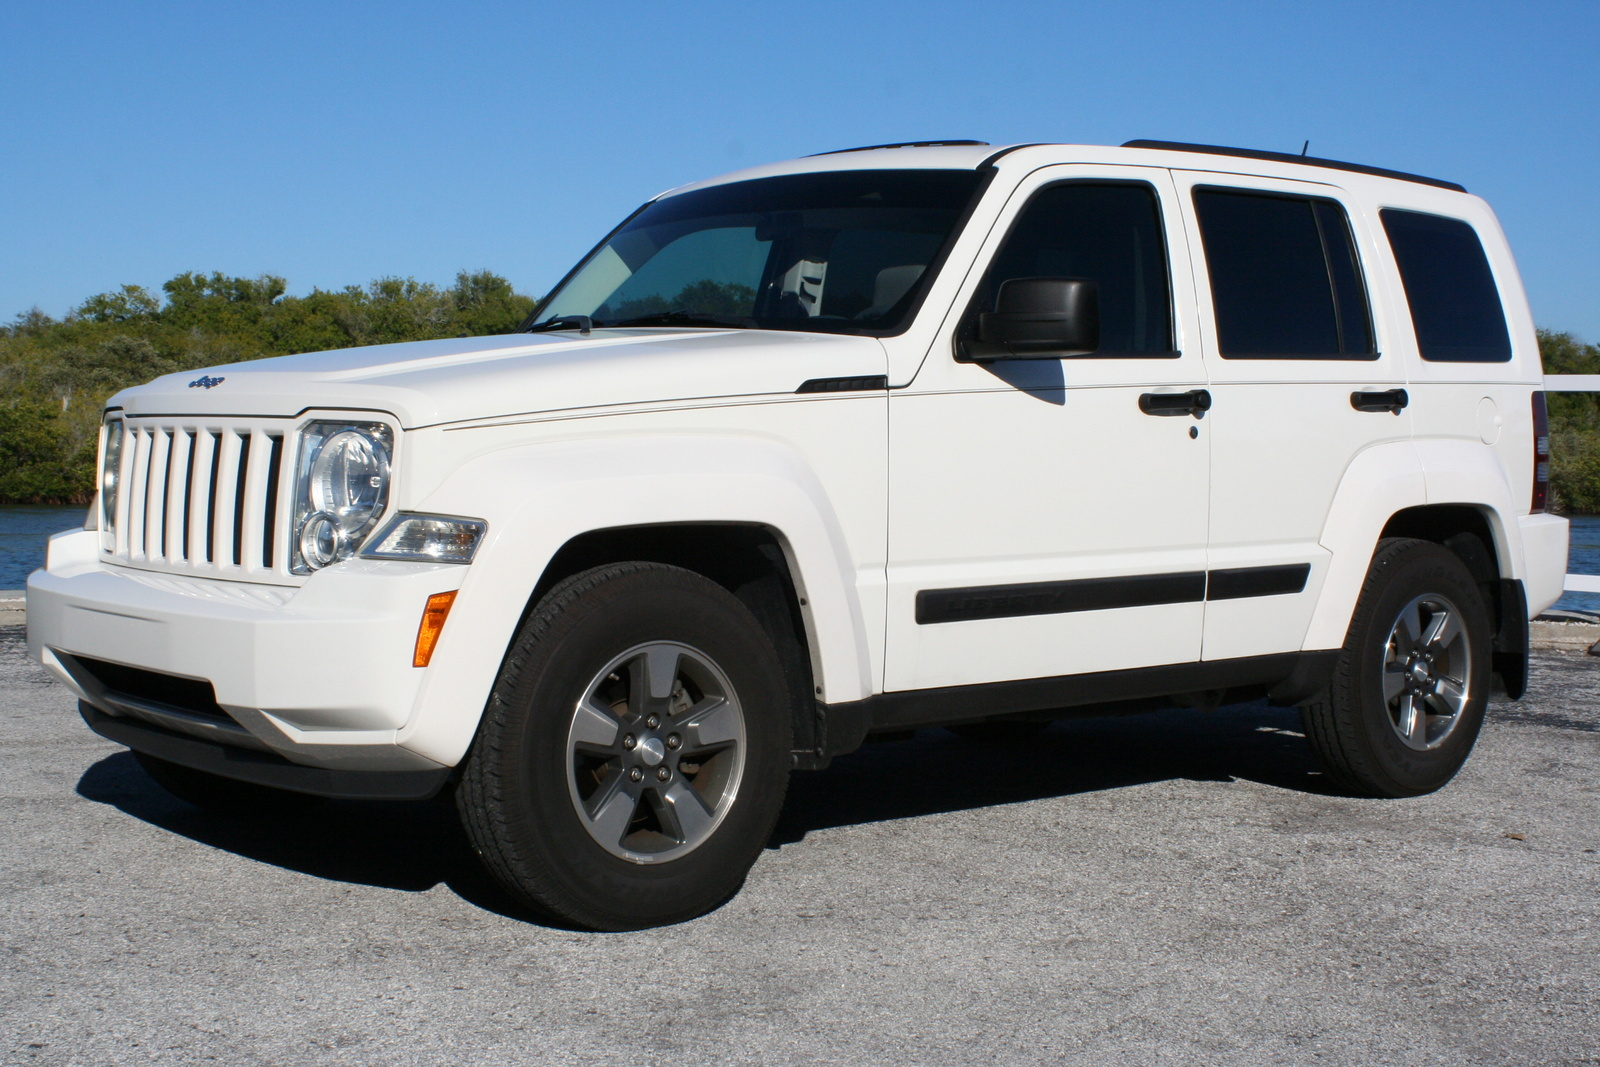 2008 jeep liberty pictures cargurus. Black Bedroom Furniture Sets. Home Design Ideas